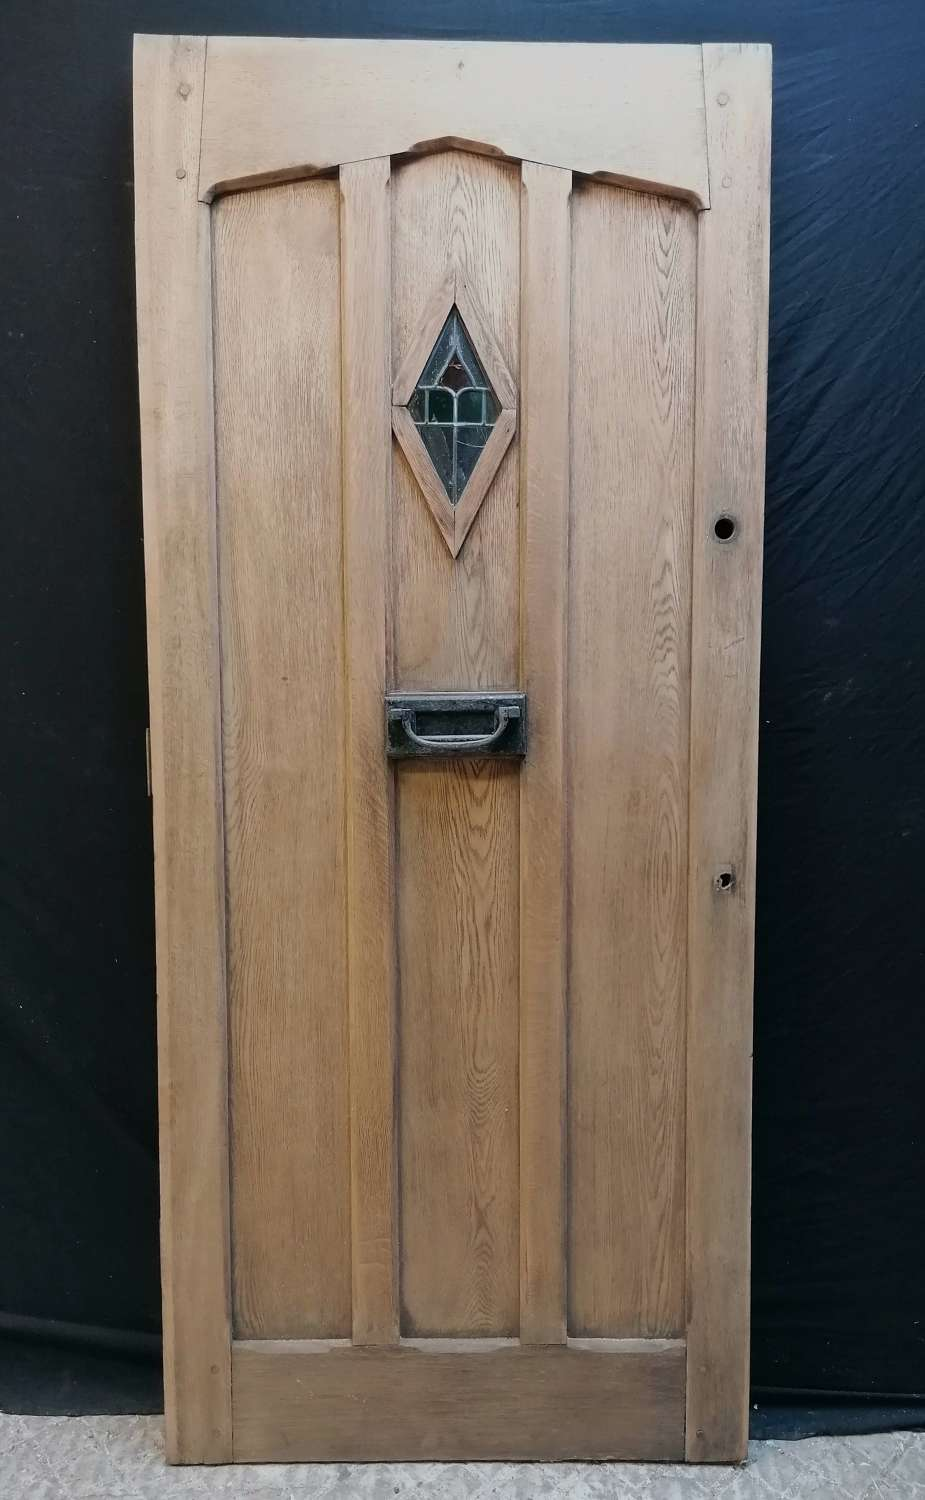 DE0886 A RECLAIMED ANTIQUE OAK FRONT DOOR WITH STAINED GLASS PANEL